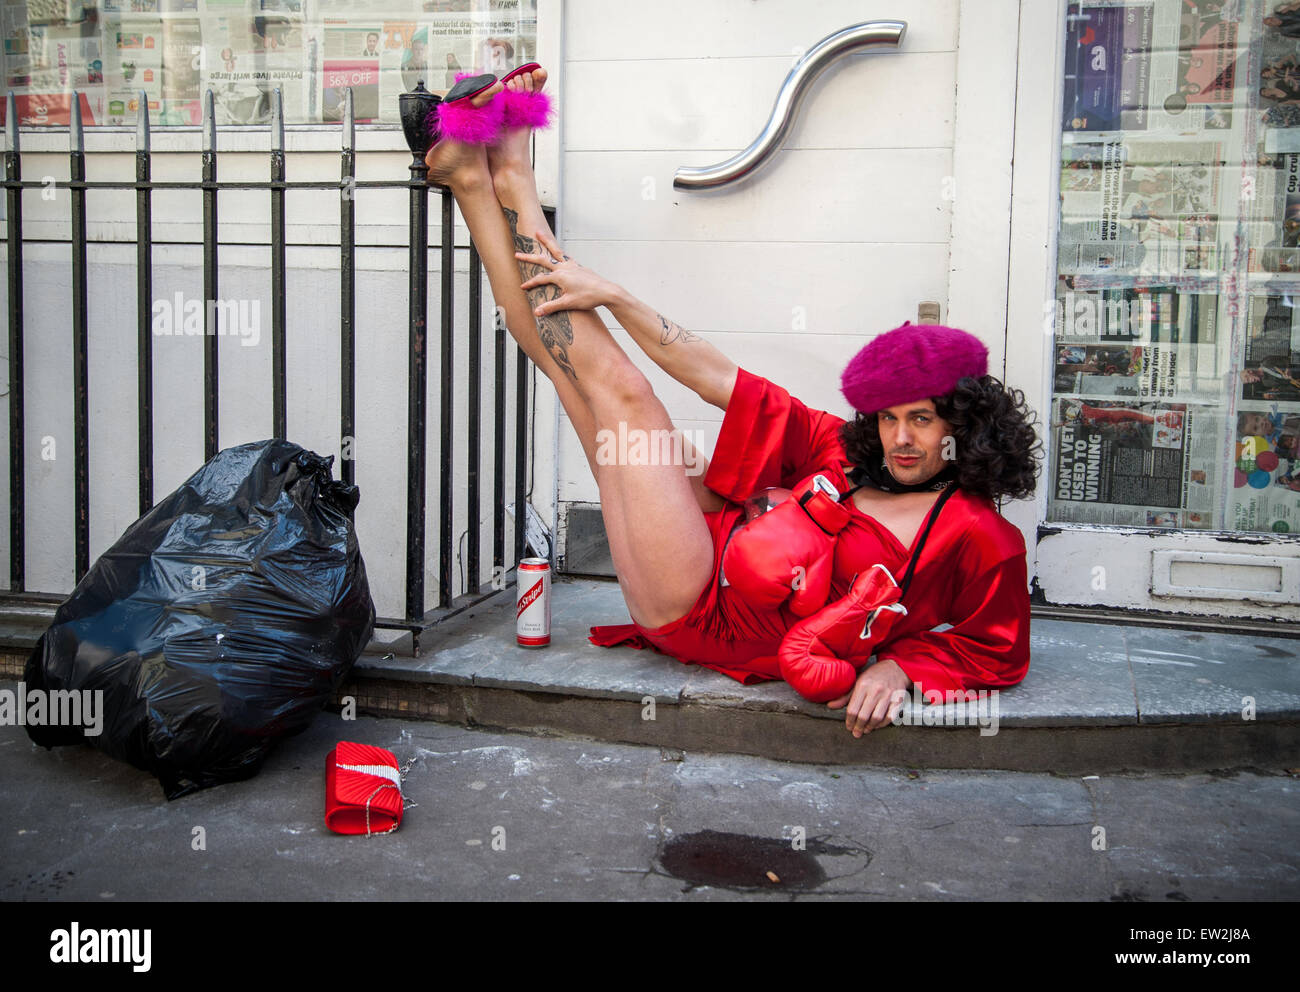 Adam Clifford (AKA Jimmy Kunt), the Class War Candidate for the City of London and Westminster in the upcoming General - Stock Image